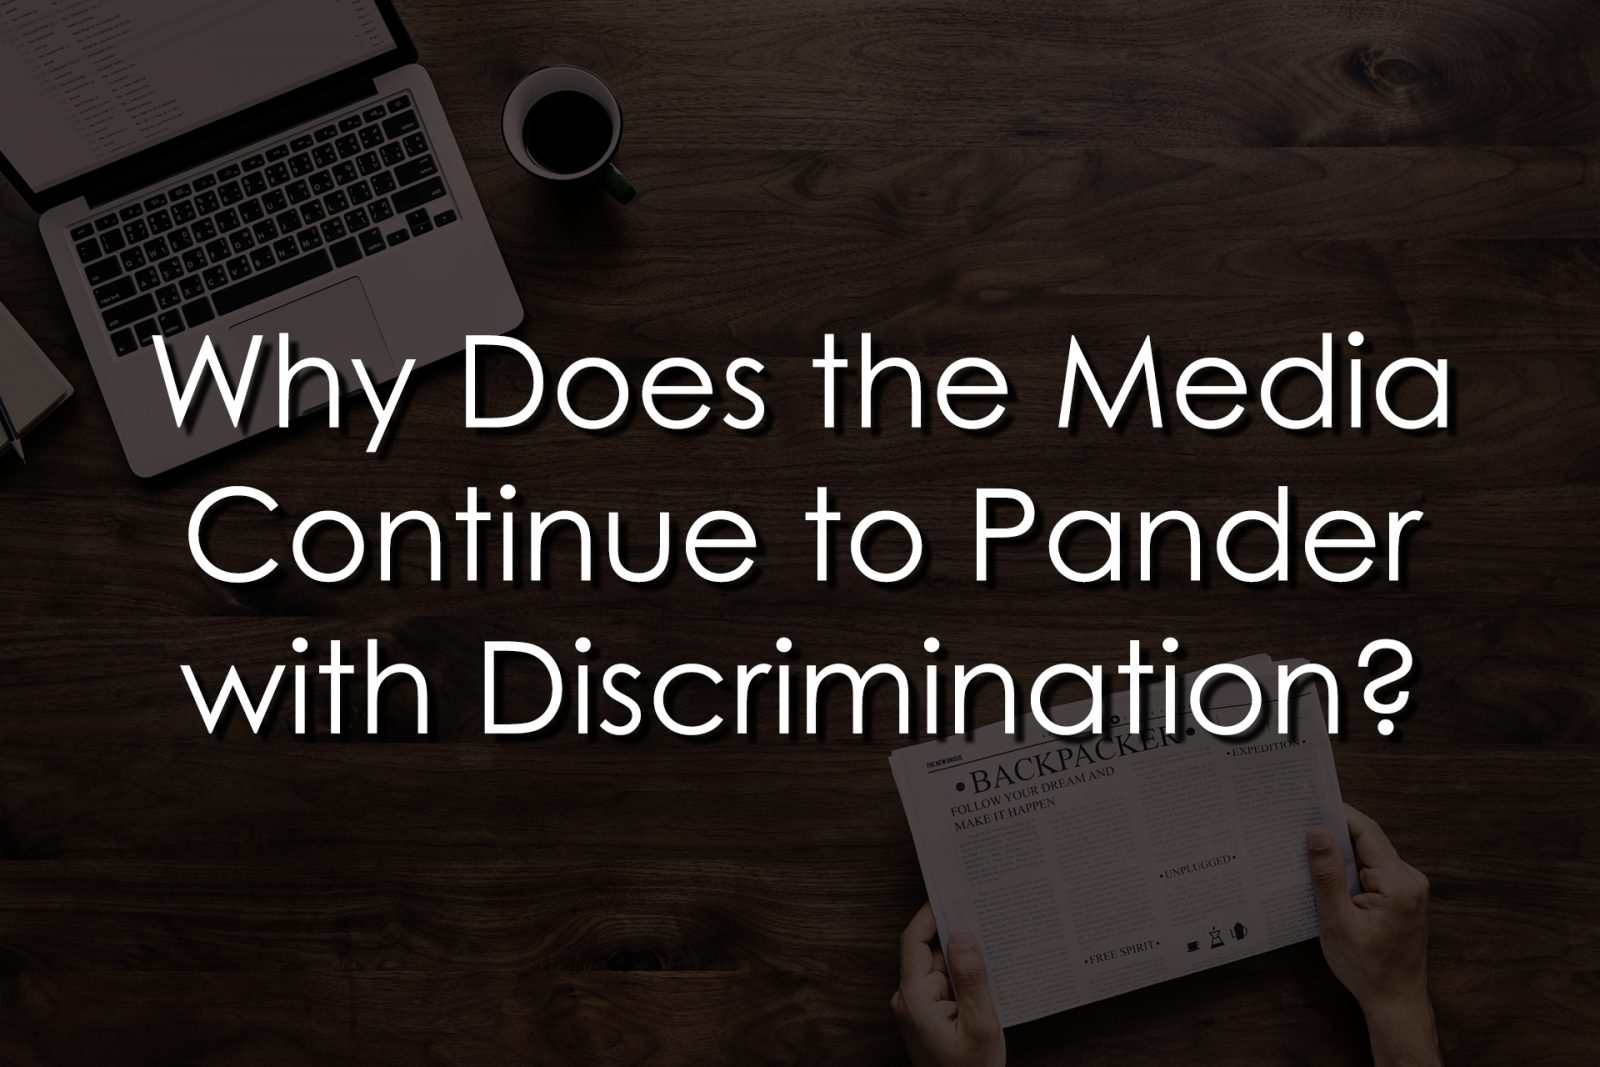 Why Does the Media Continue to Pander with Discrimination?